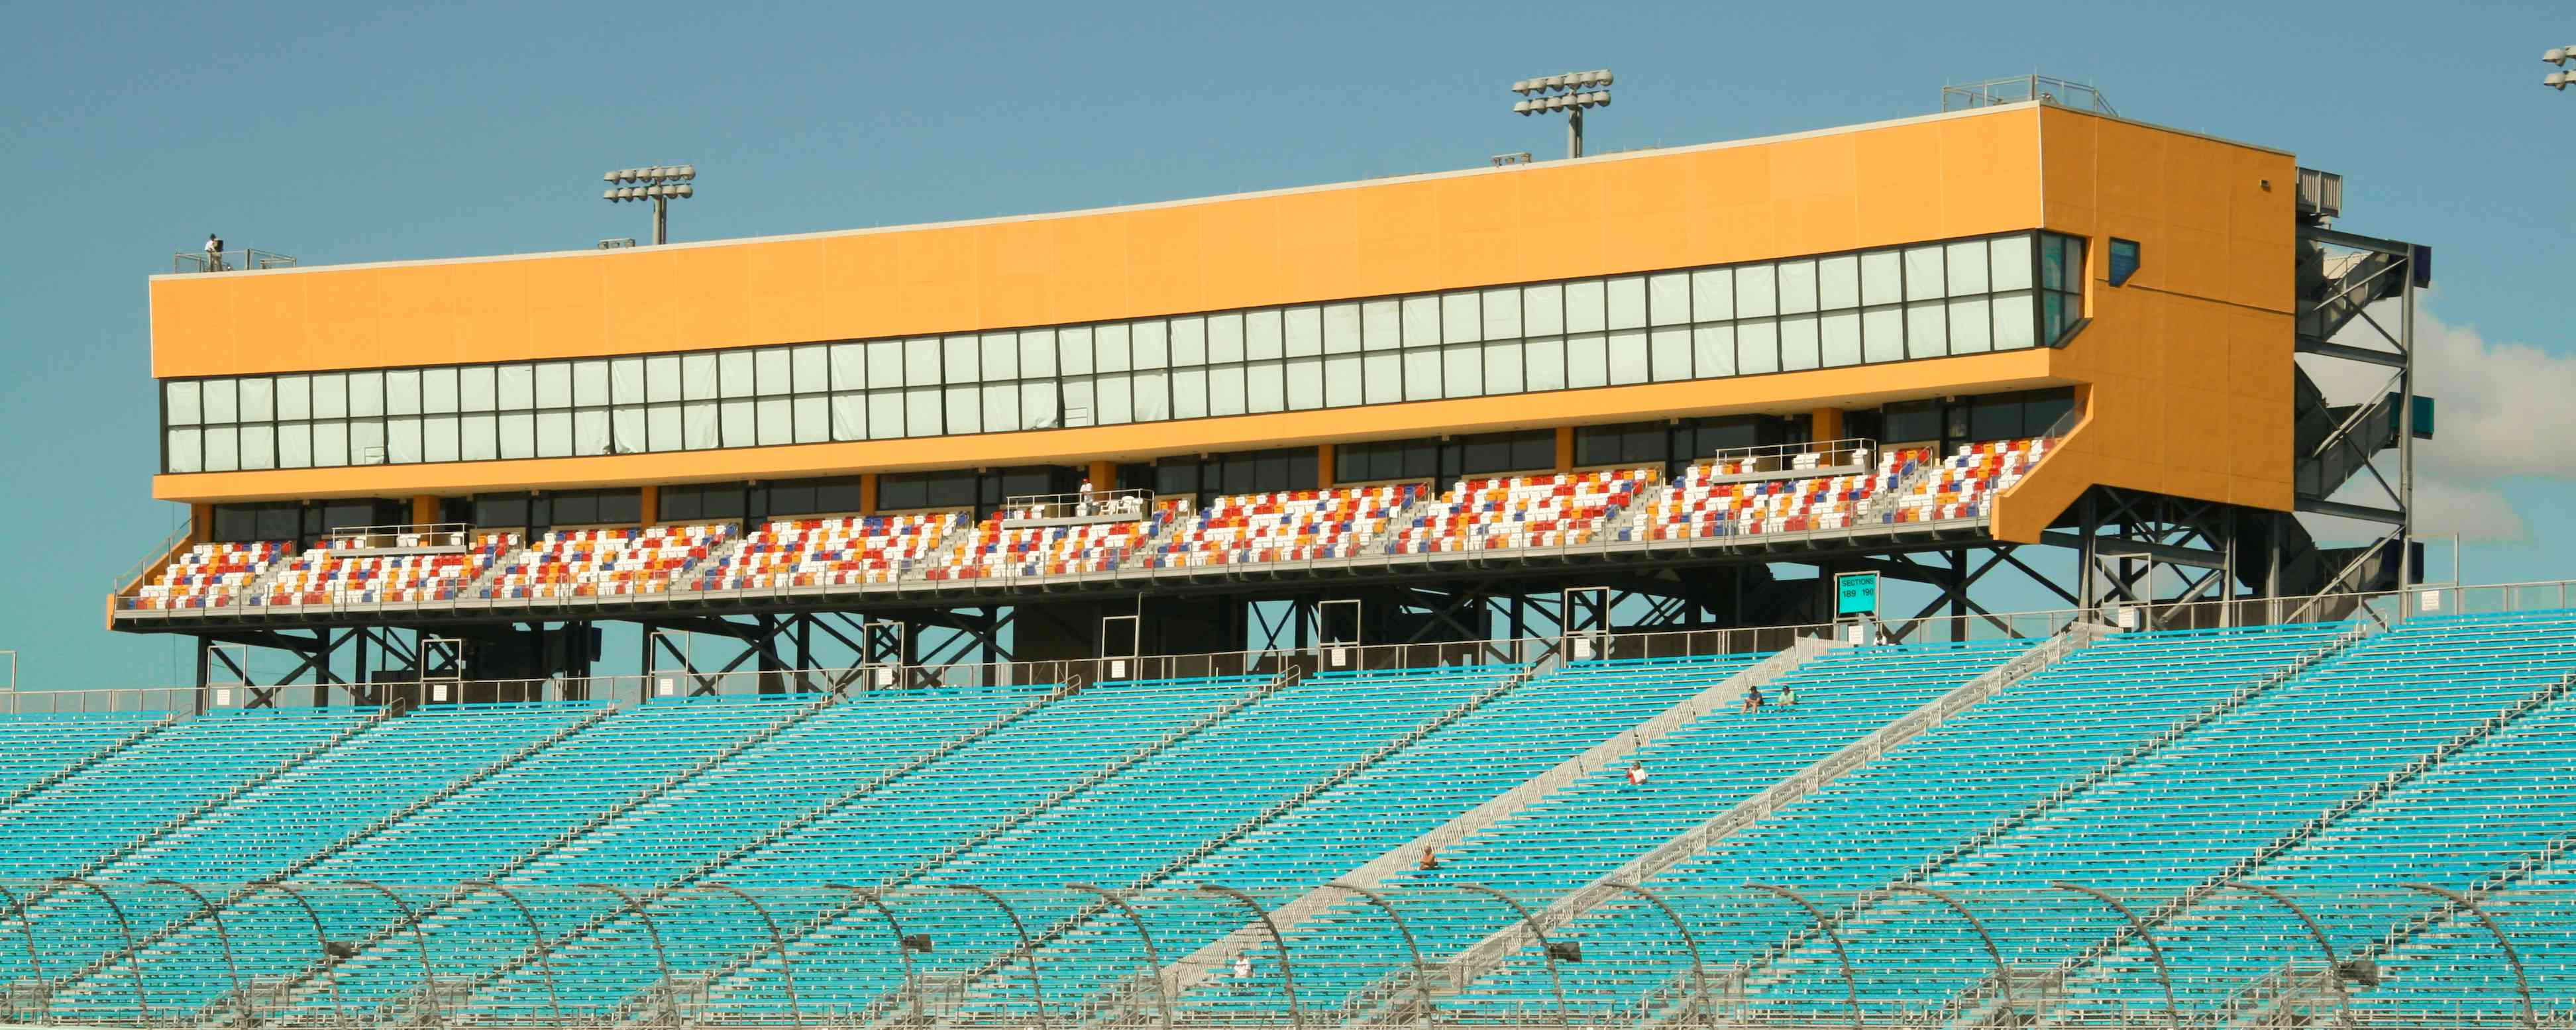 Blue seats and yellow observation box at Homestead-Miami Speedway